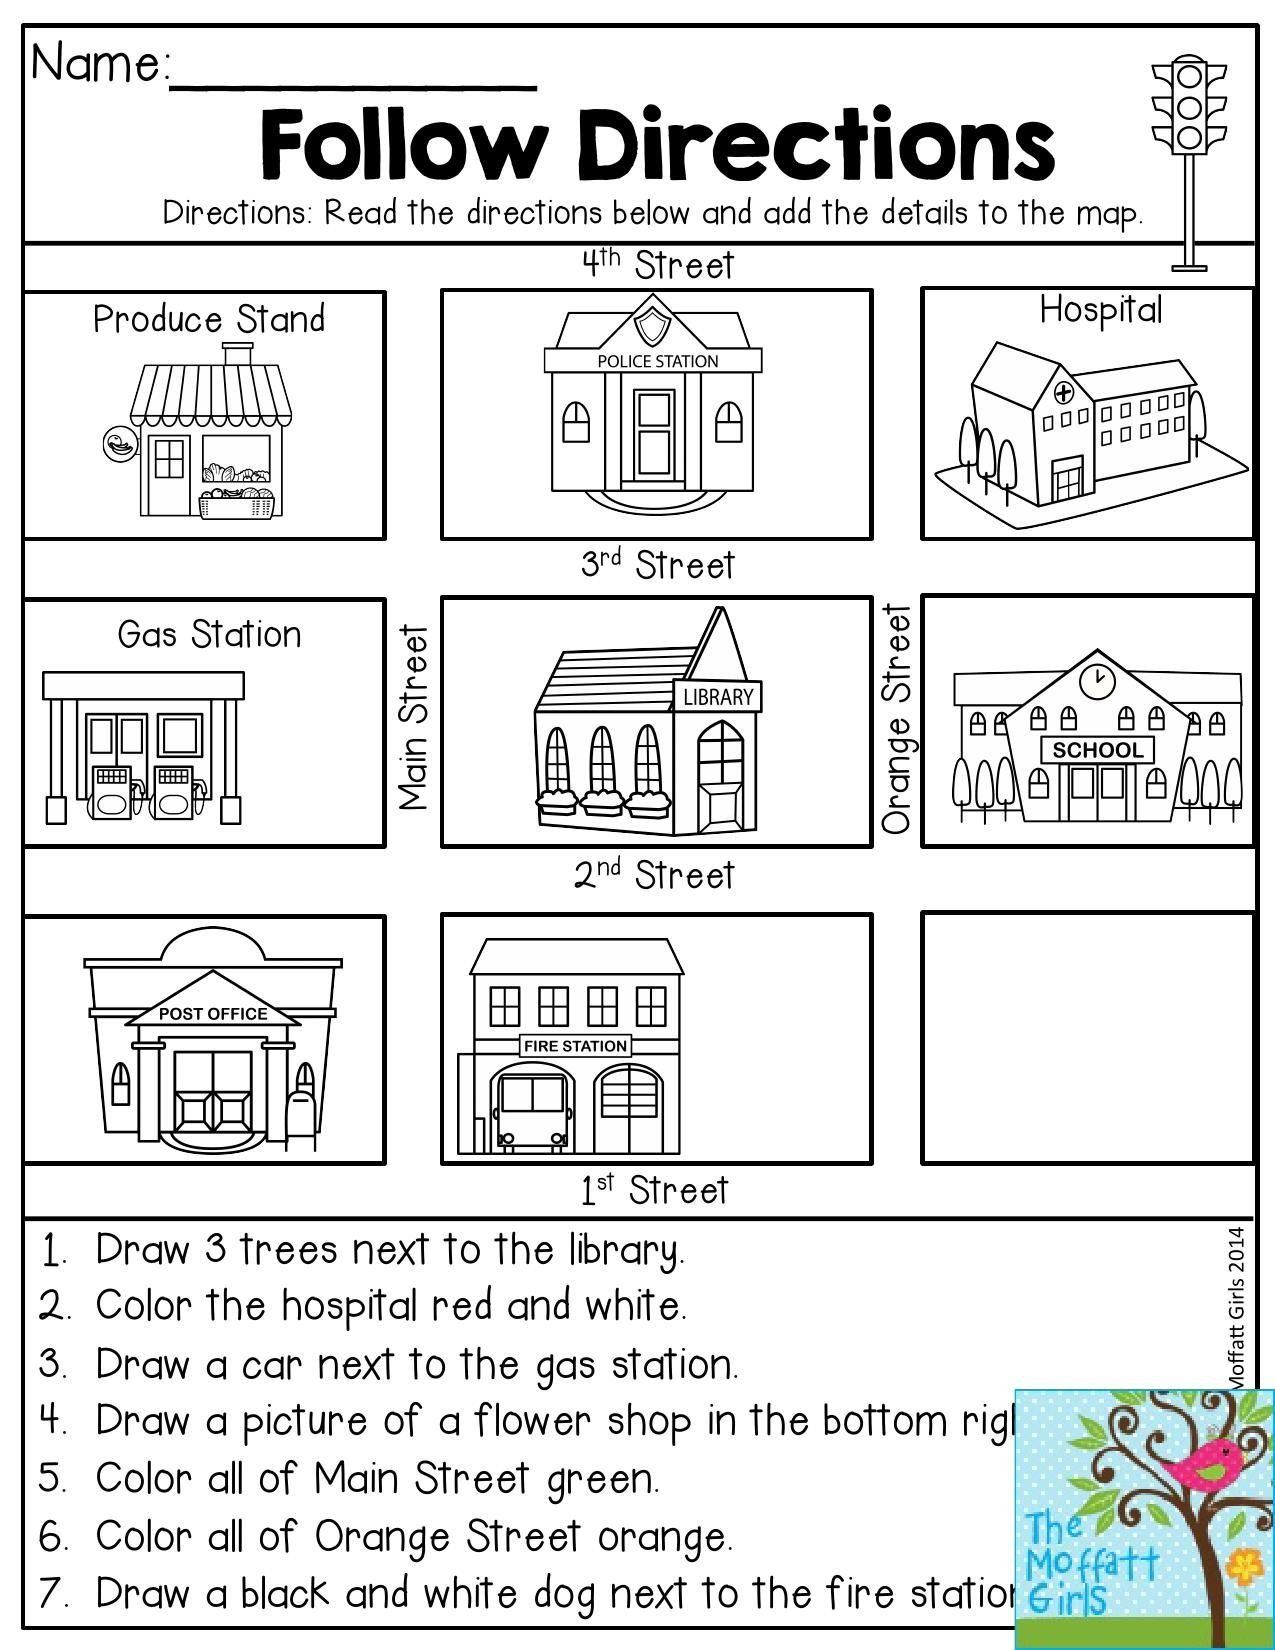 Following 2 Step Directions Worksheets Follow Directions Read the Directions  and Add the D…   Map skills worksheets [ 1650 x 1275 Pixel ]